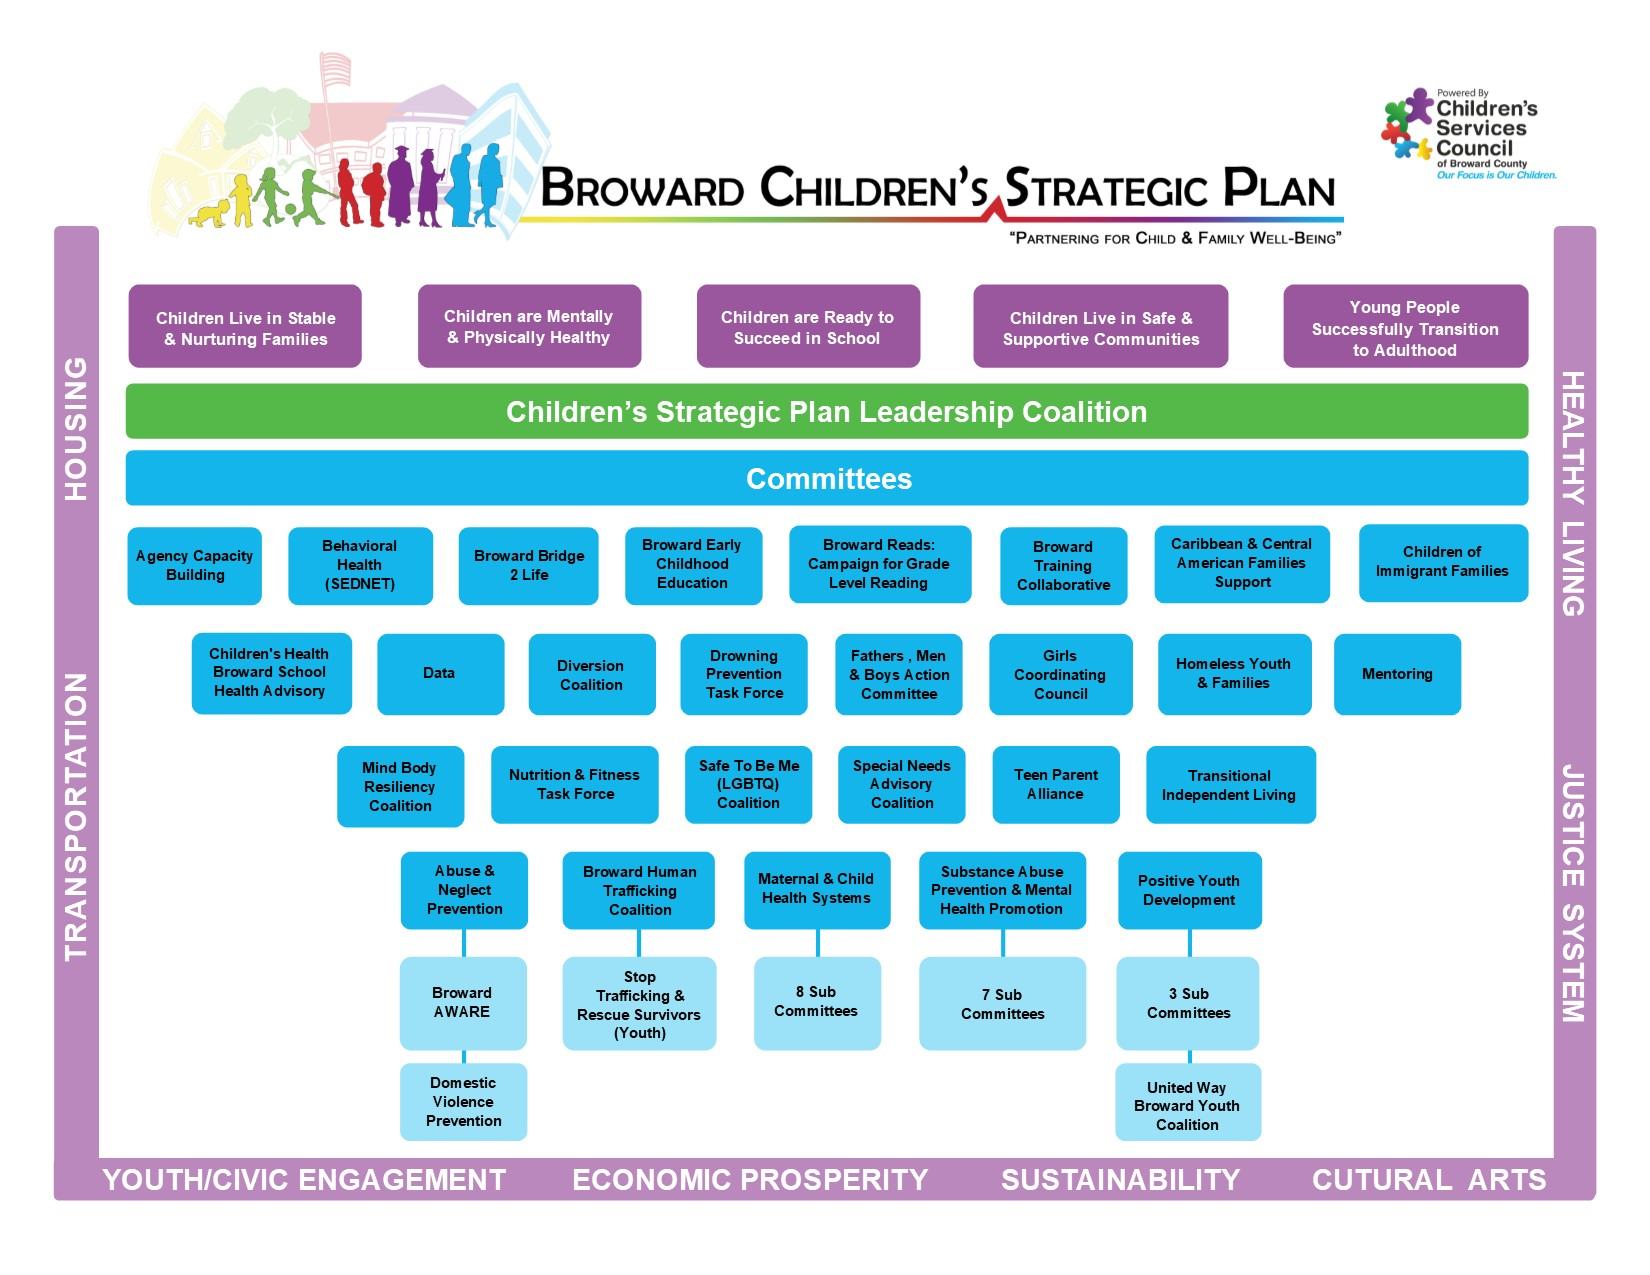 Broward Children's Strategic Plan Map